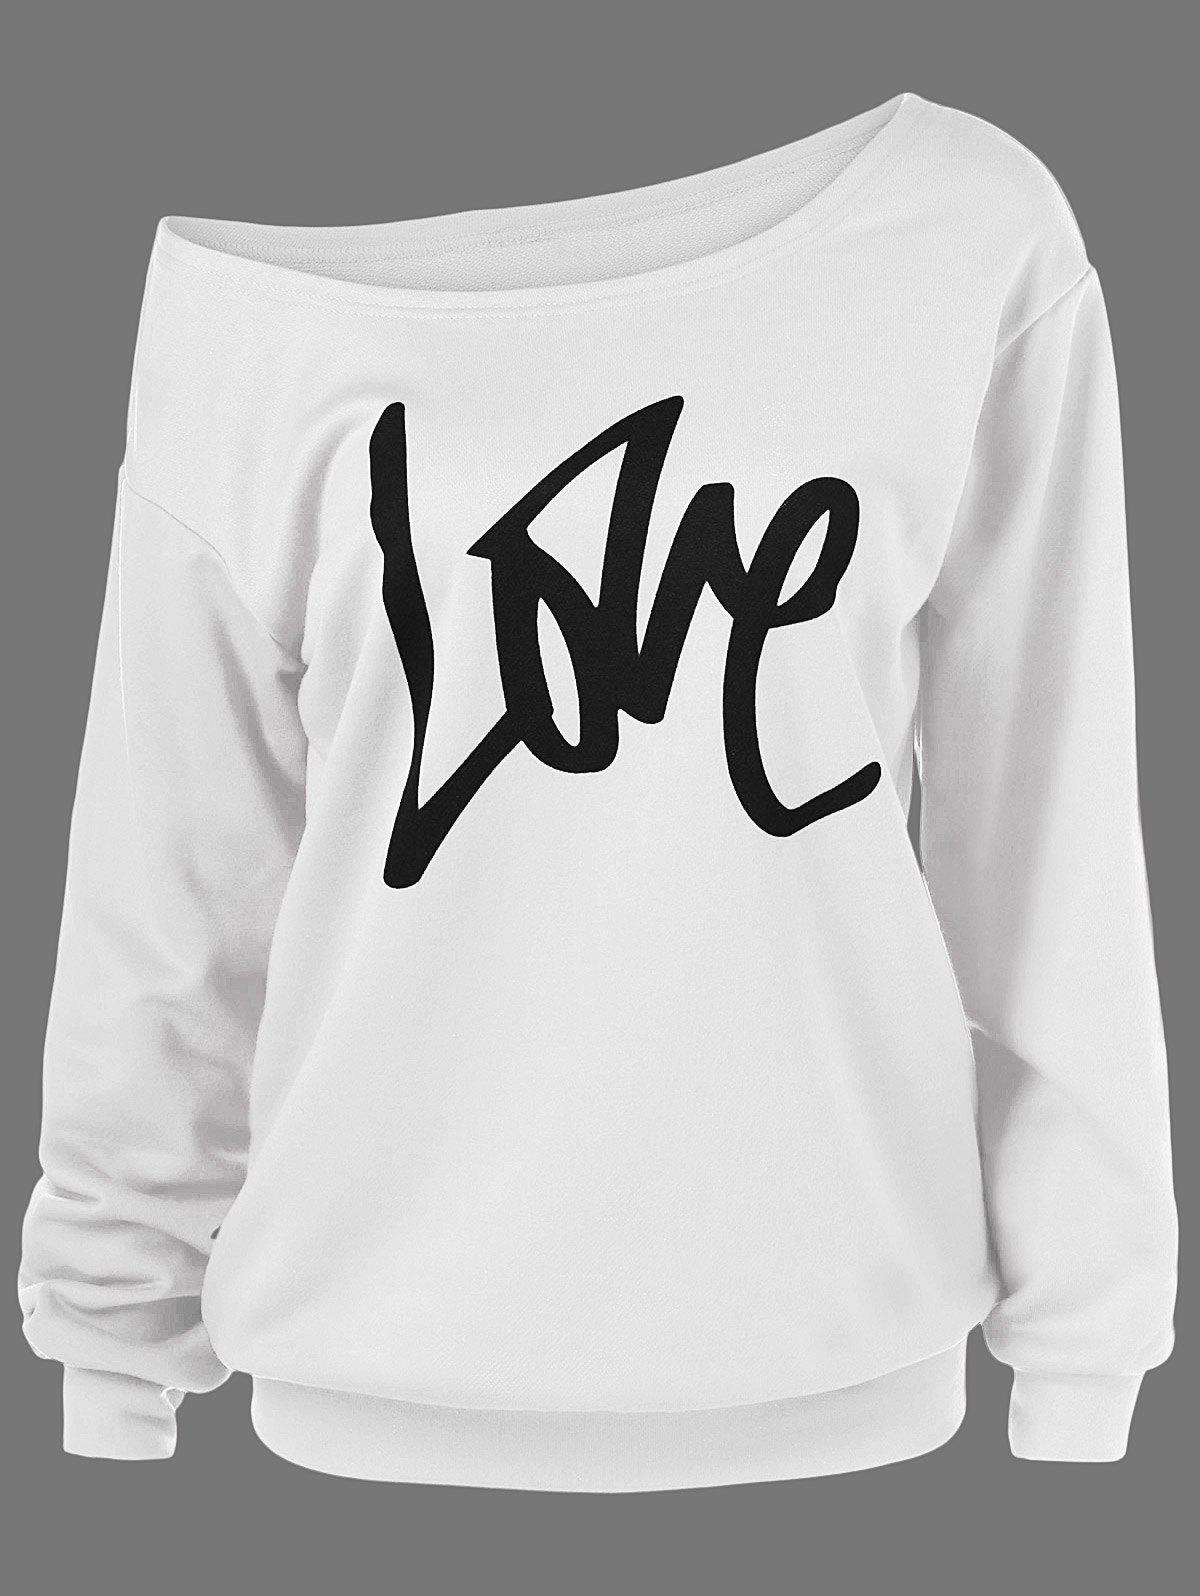 Skew Collar Love Plus Size SweatshirtWOMEN<br><br>Size: 2XL; Color: WHITE; Material: Polyester; Shirt Length: Regular; Sleeve Length: Full; Style: Casual; Pattern Style: Letter; Season: Fall,Spring; Weight: 0.3800kg; Package Contents: 1 x Sweatshirt;